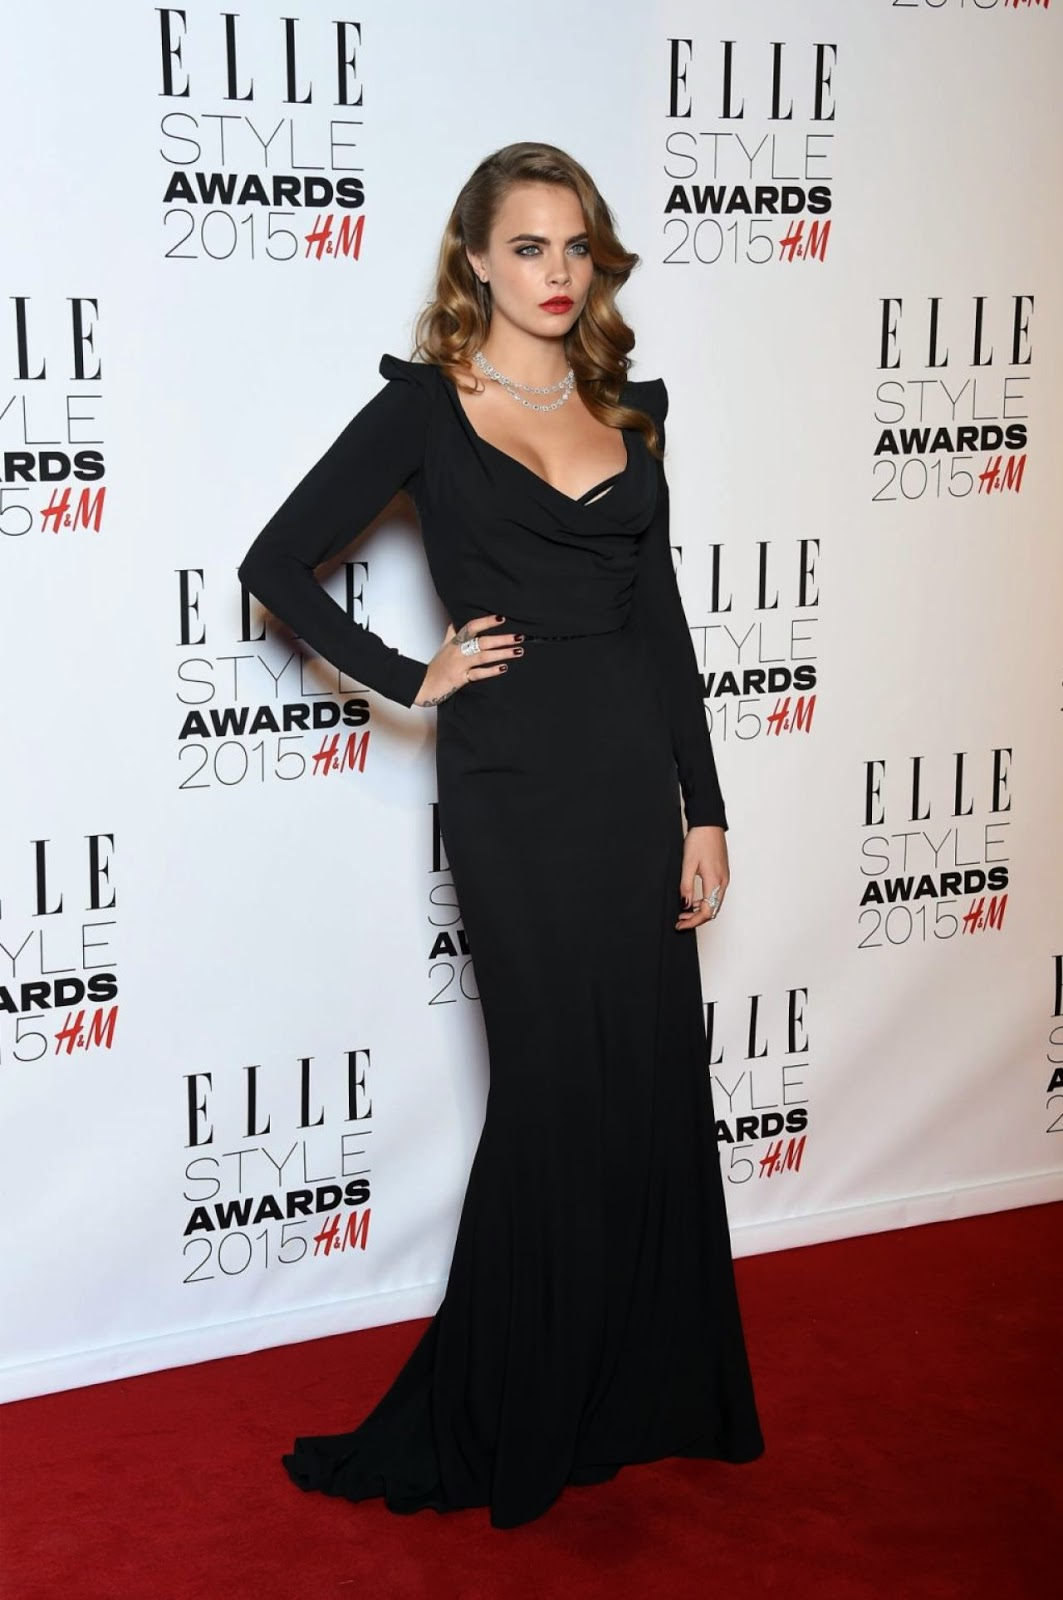 Cara Delevingne is elegant in black at the 2015 Elle Style Awards in London